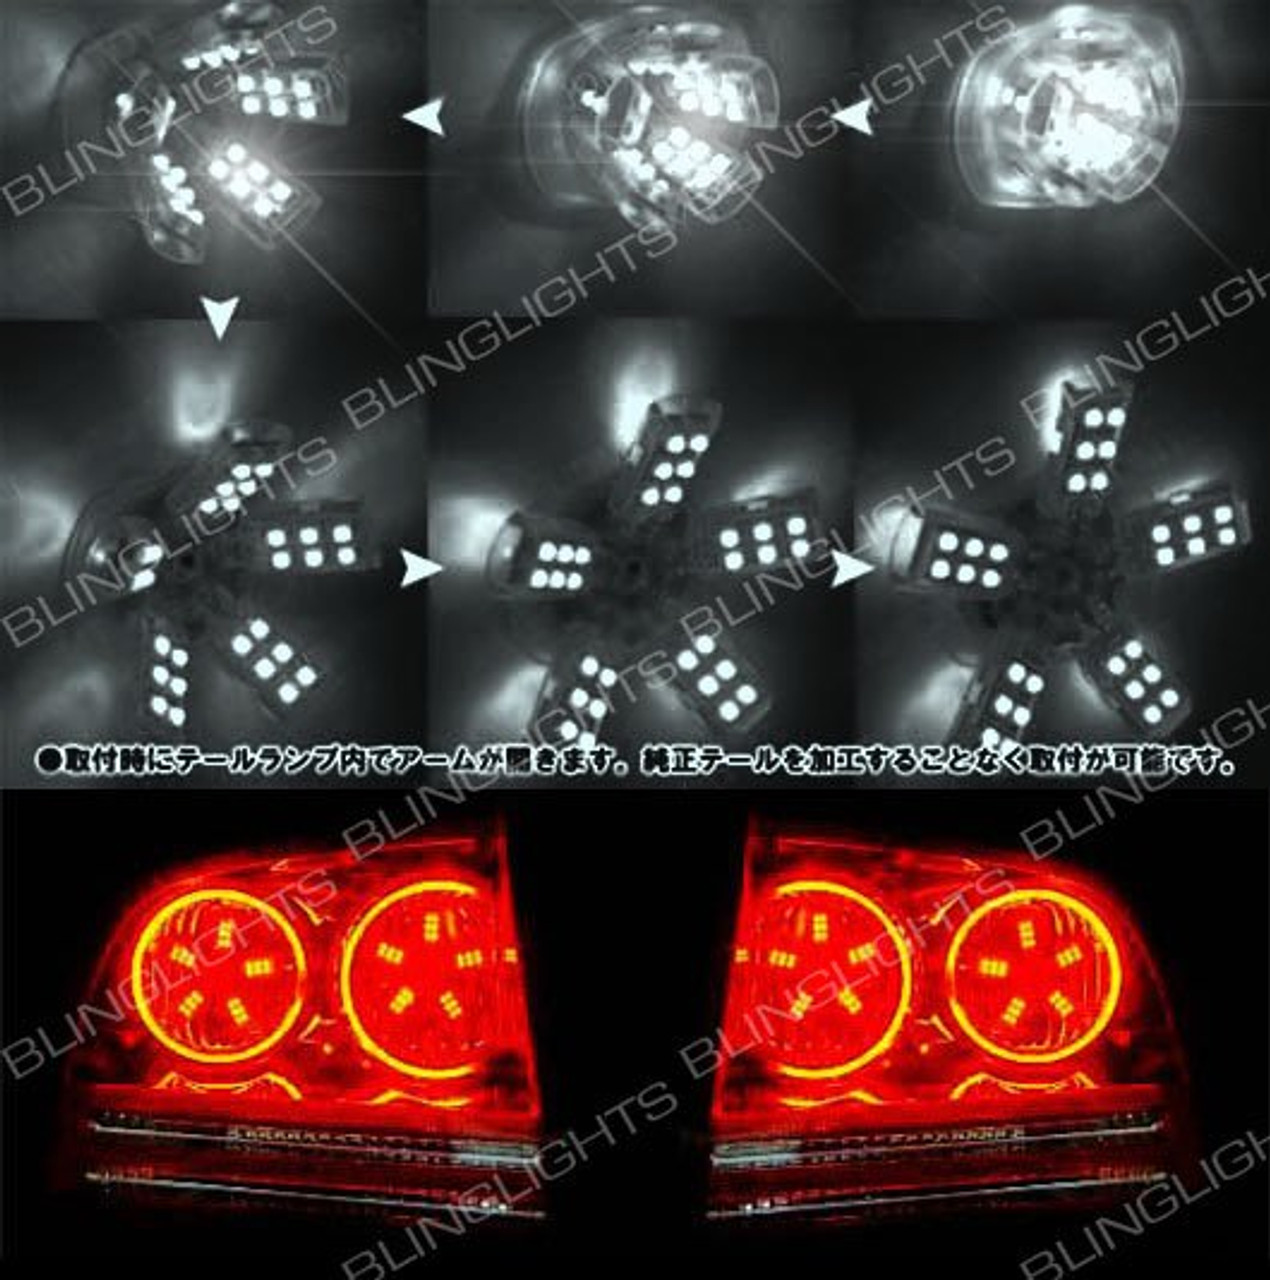 Fiat Freemont White LED Custom Tail Lamp Spider Light Bulbs